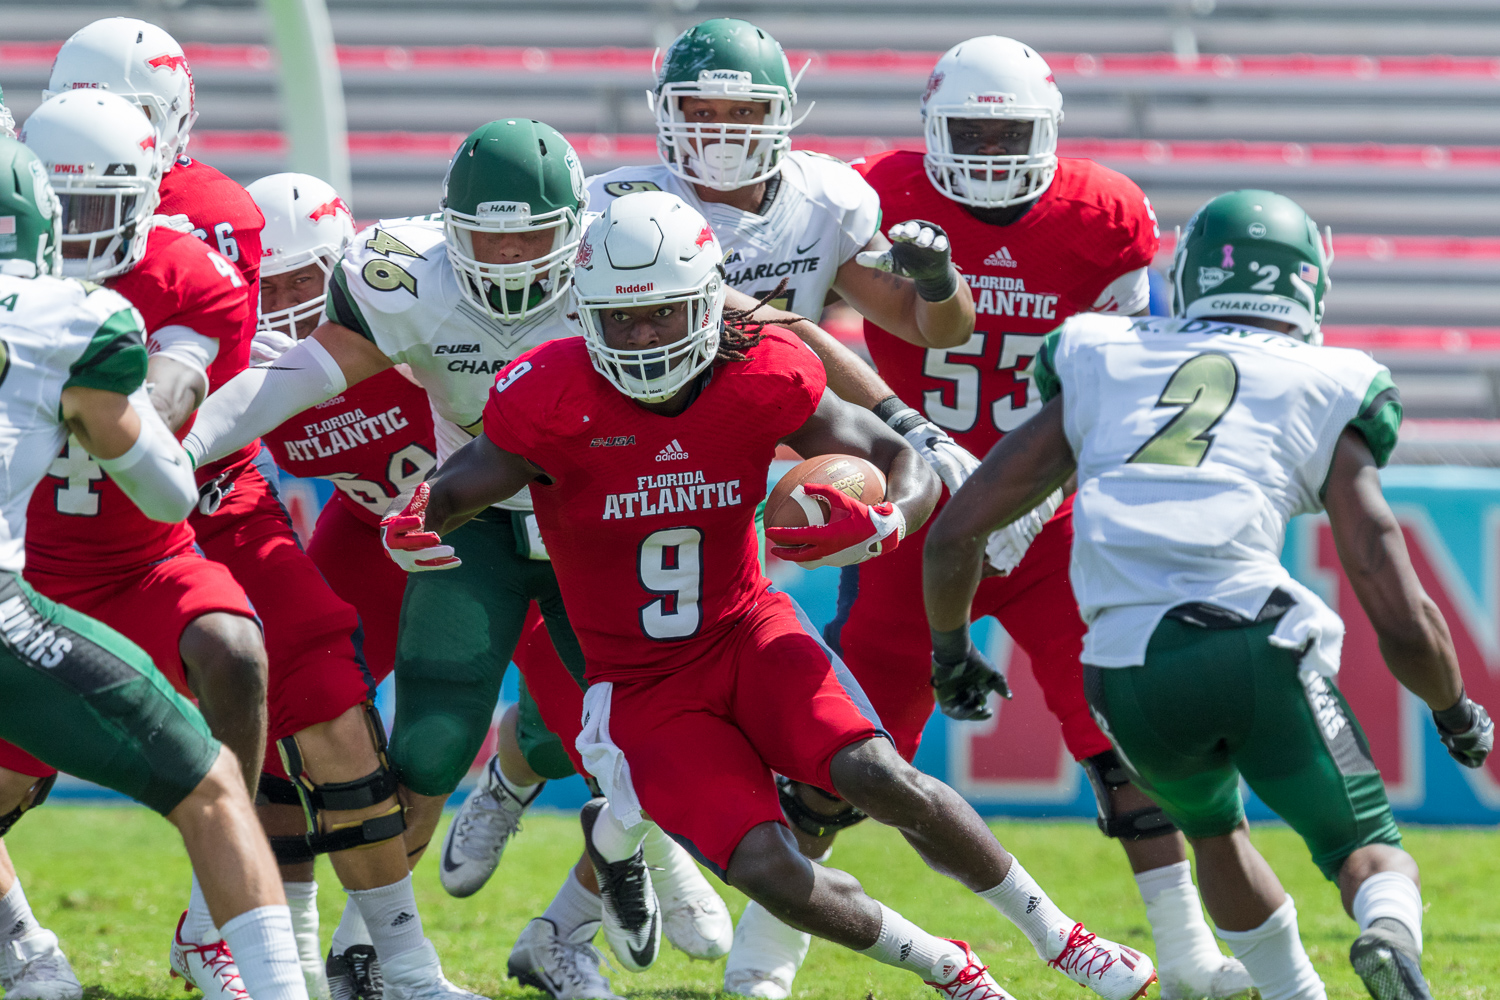 FAU junior running back Greg Howell (9) picks up yards in the game against the Charlotte 49ers Sunday.